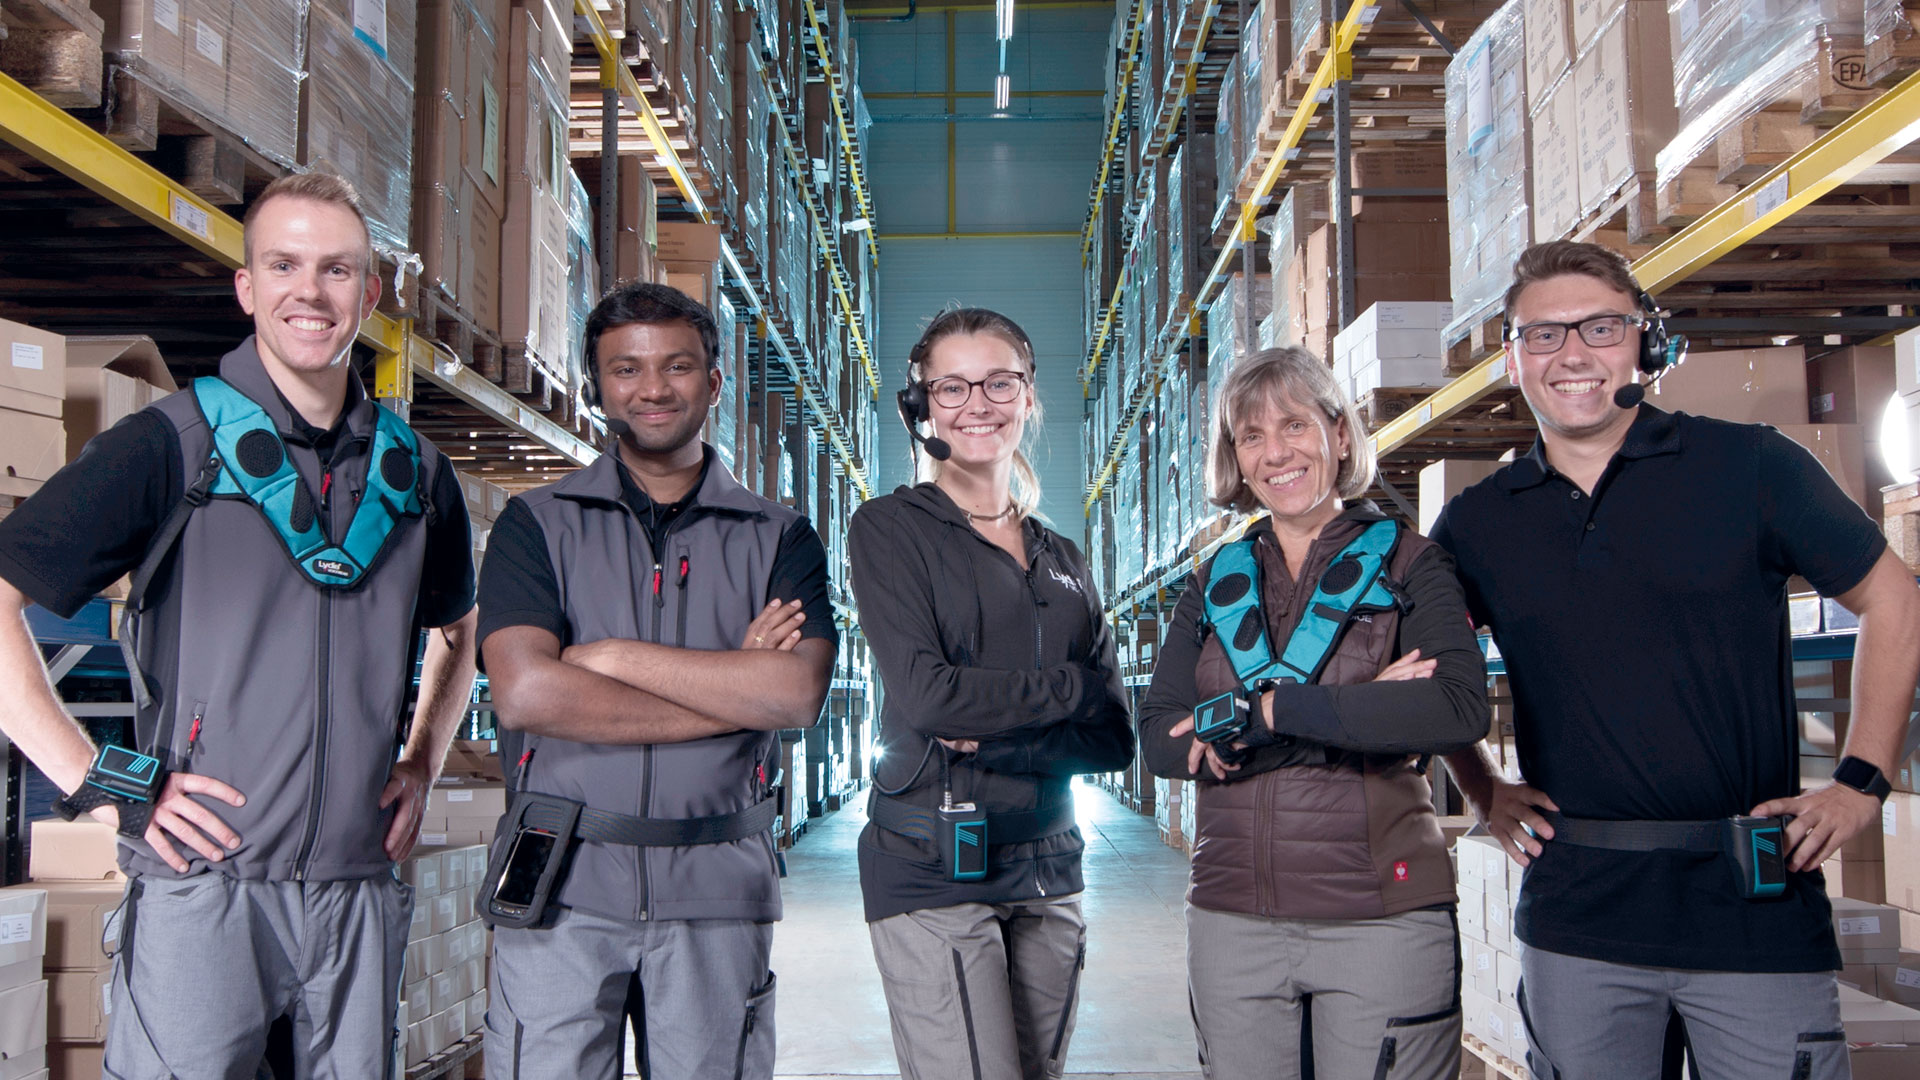 Several warehouse employees stand between storage racks and present different warehouse equipment such as Lydia VoiceWear, headsets, scanners and mobile devices that work with Lydia Voice.